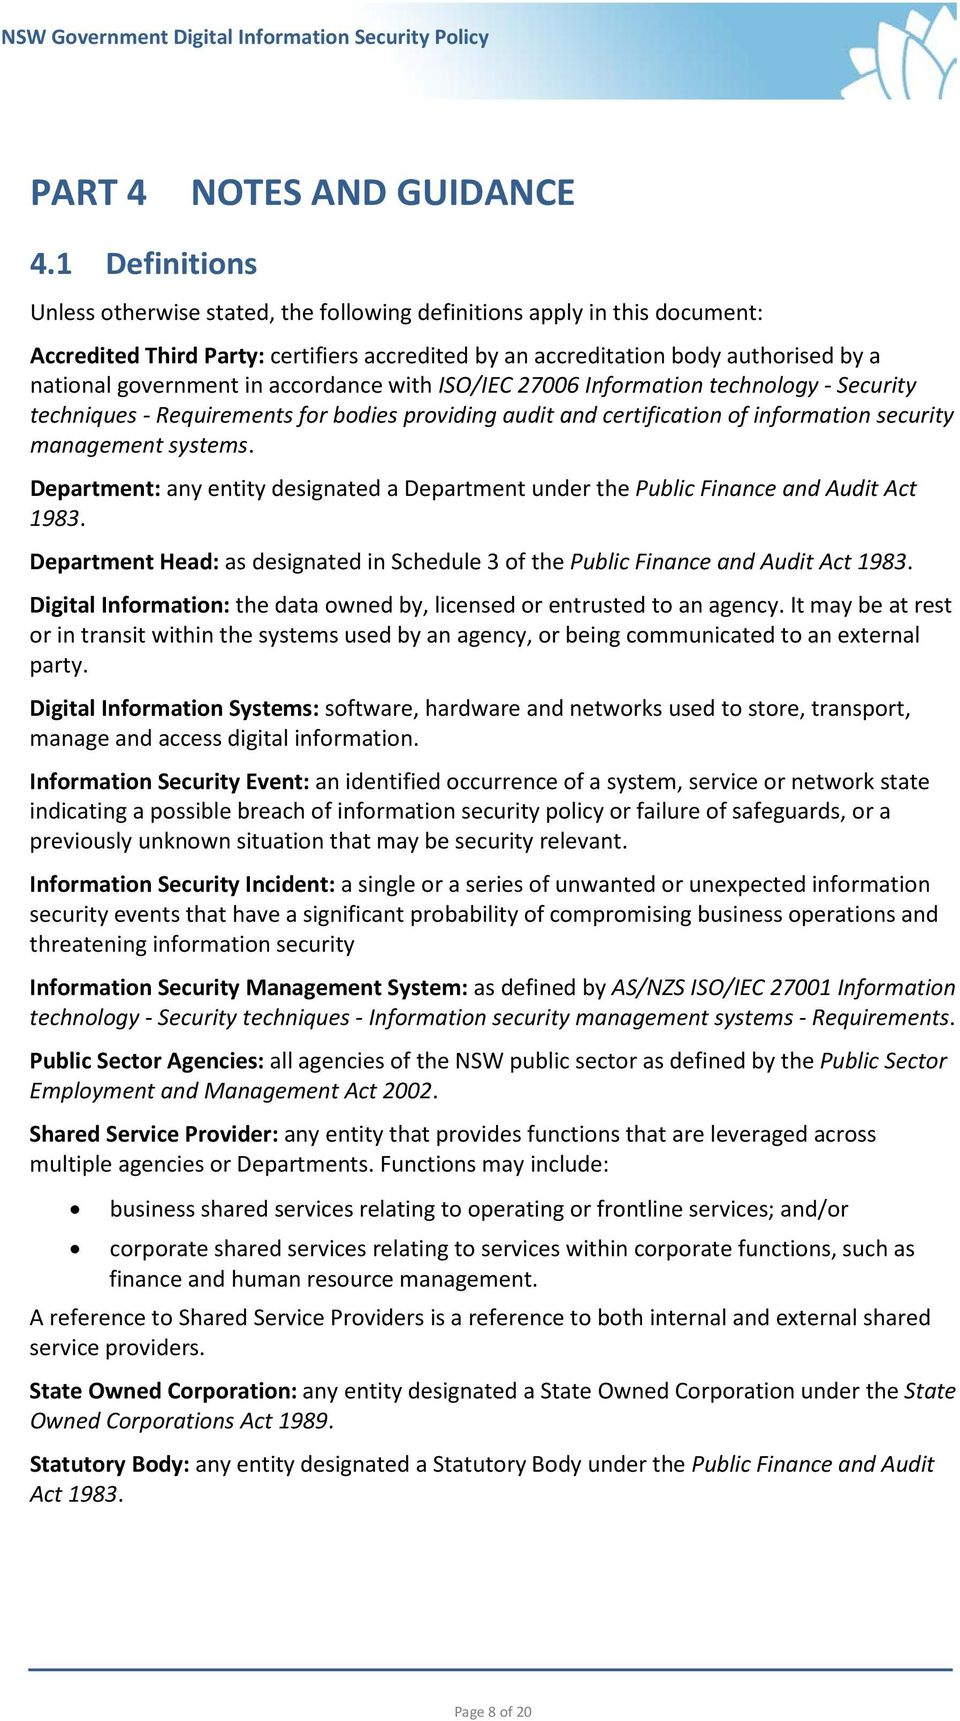 accordance with ISO/IEC 27006 Information technology - Security techniques - Requirements for bodies providing audit and certification of information security management systems.